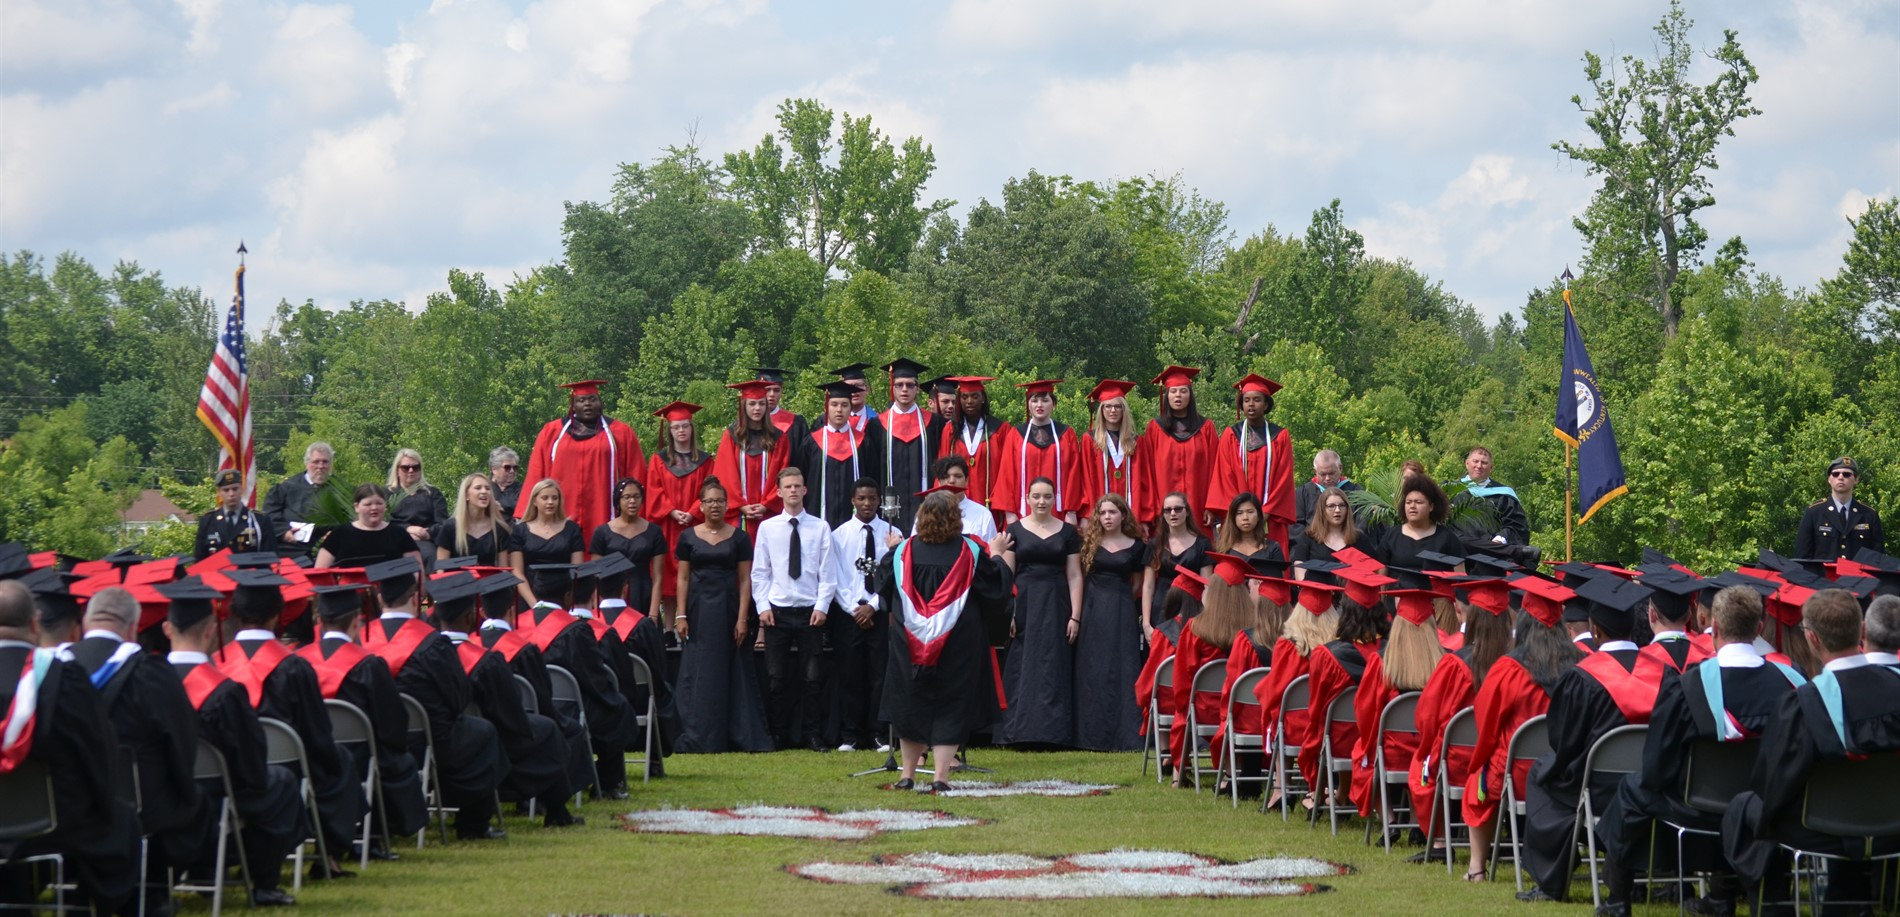 The John Hardin High School choir performed at the JHHS graduation ceremony.